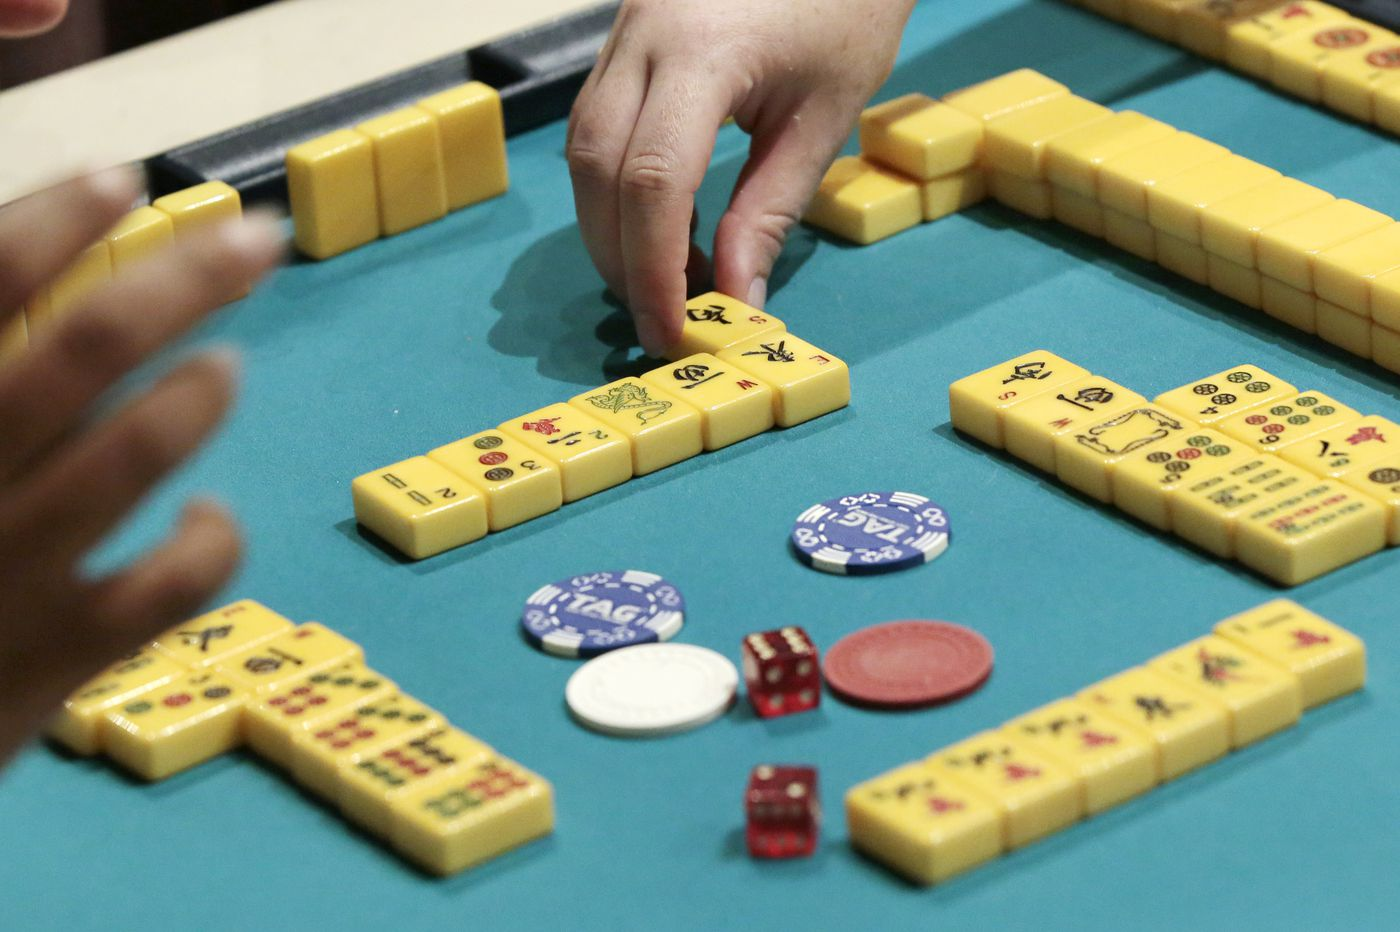 Philly's mahjong club brings a time-honored game to bottle shops, board-game cafes